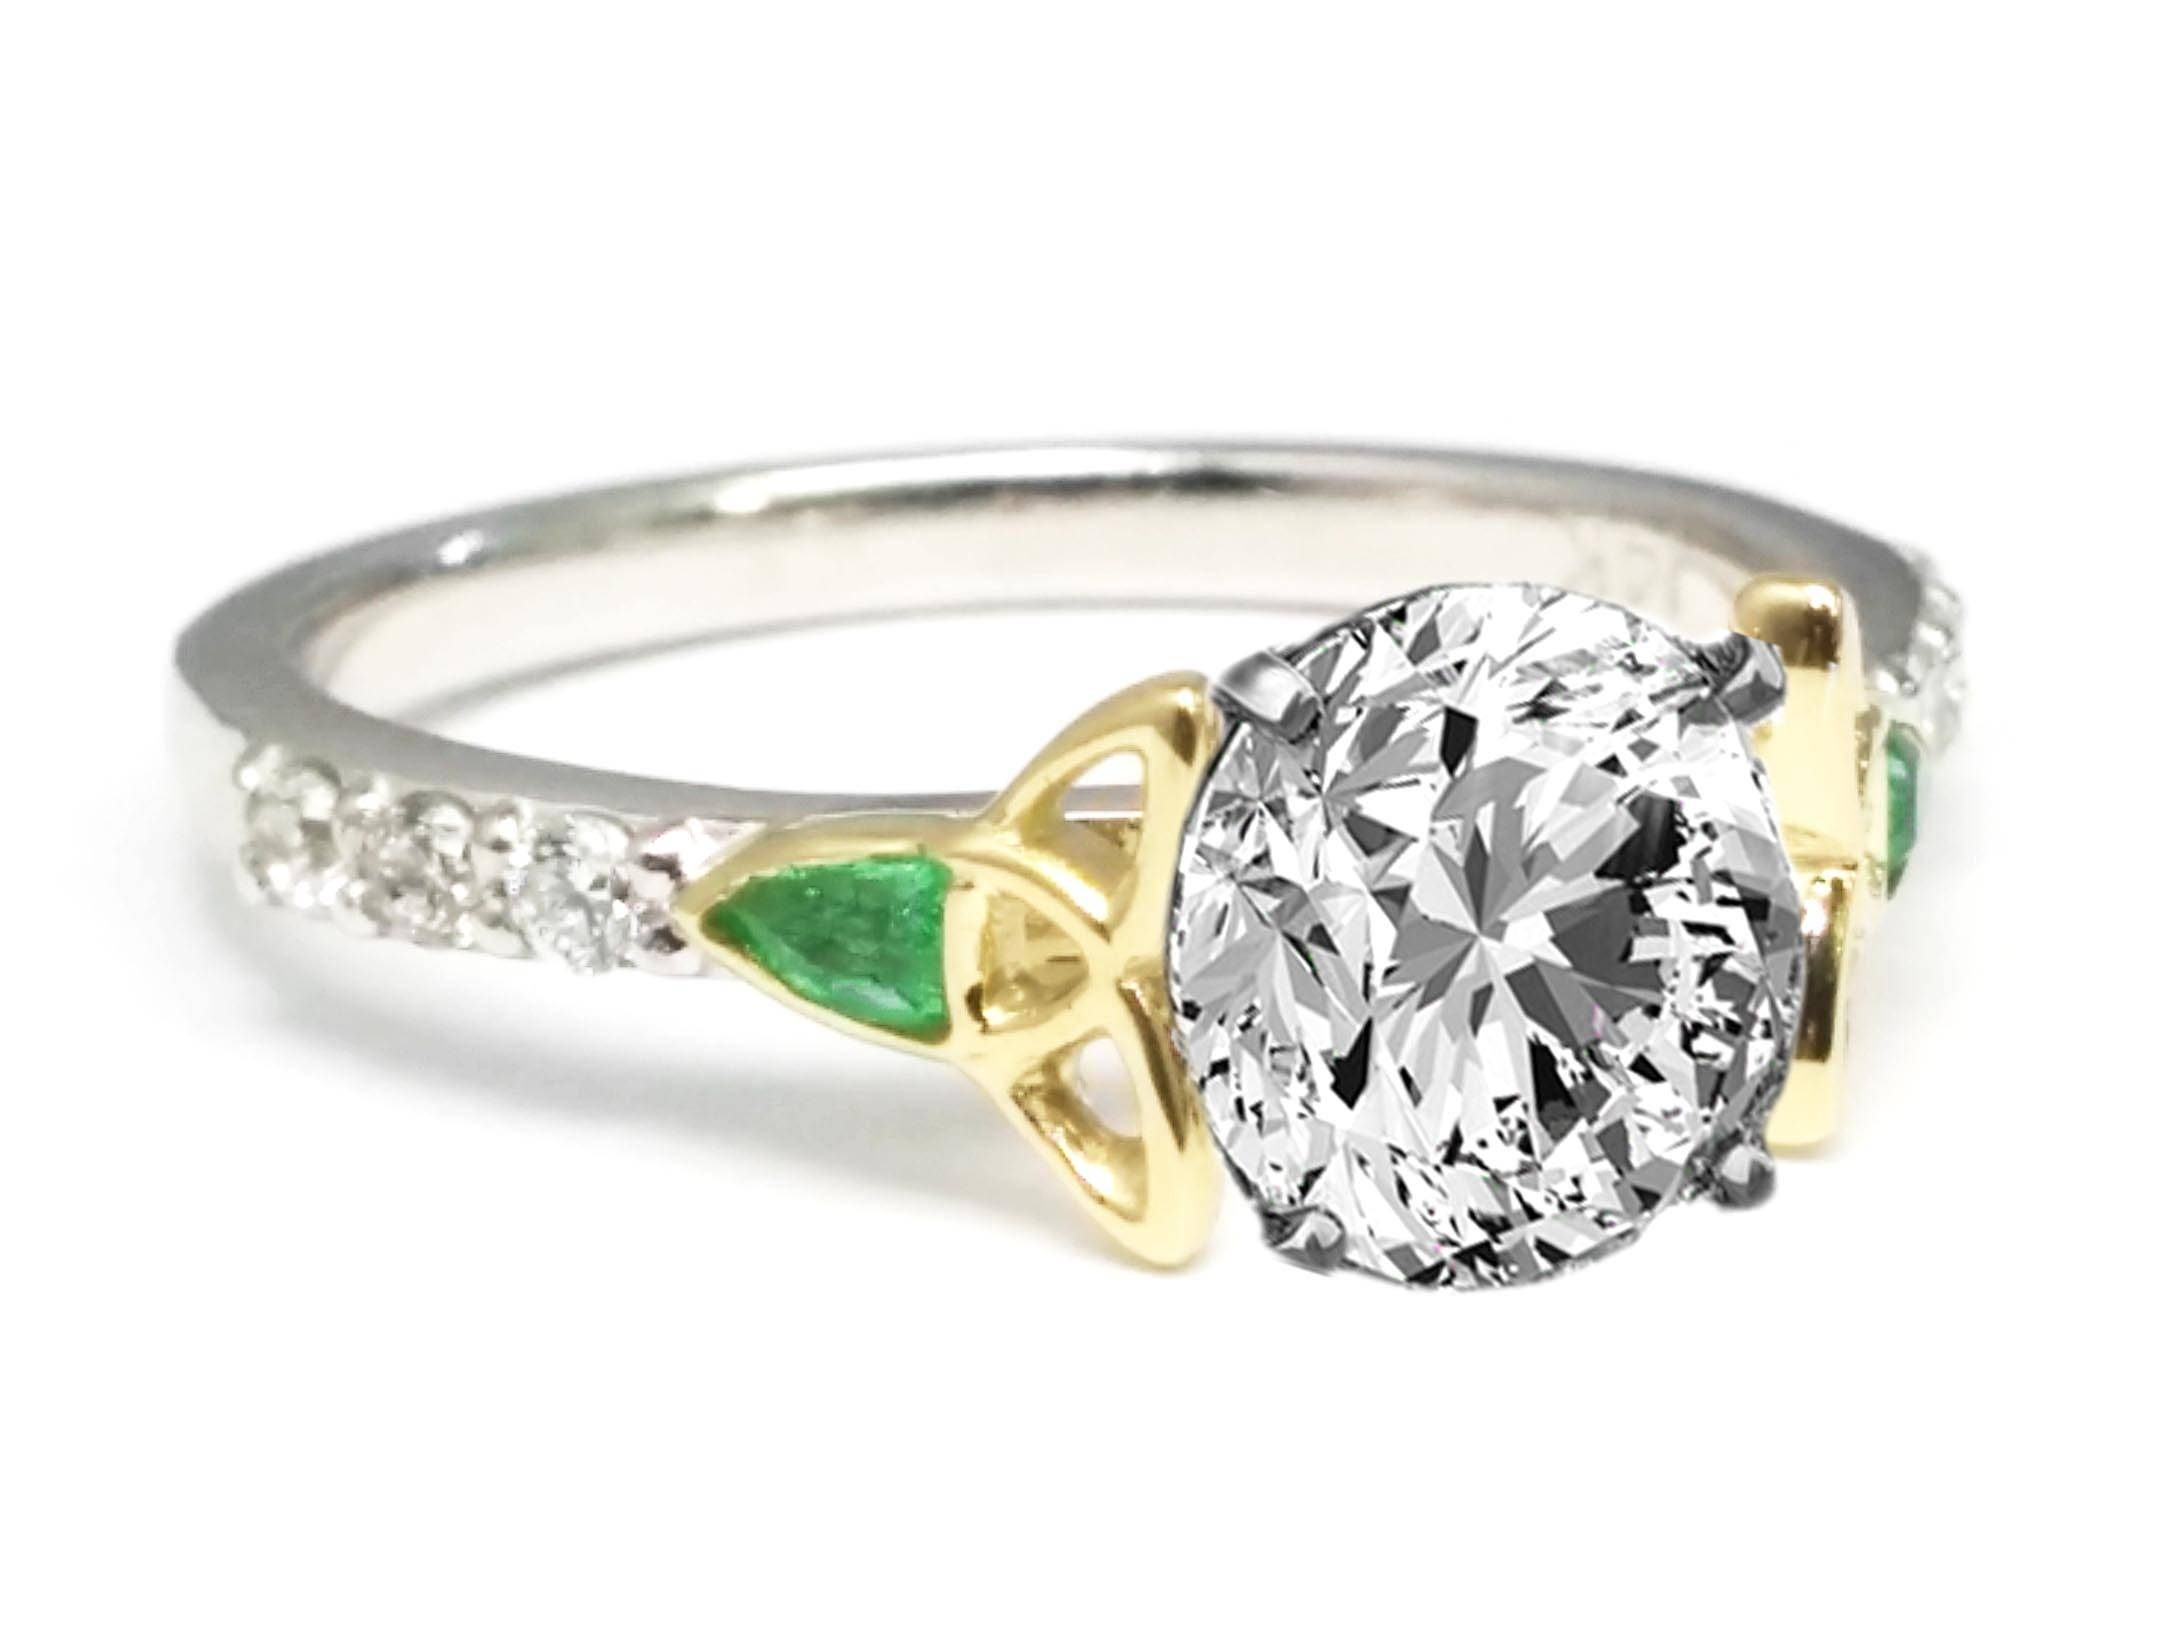 Celtic – Engagement Rings From Mdc Diamonds Nyc Throughout Celtic Engagement Ring Settings (View 5 of 15)